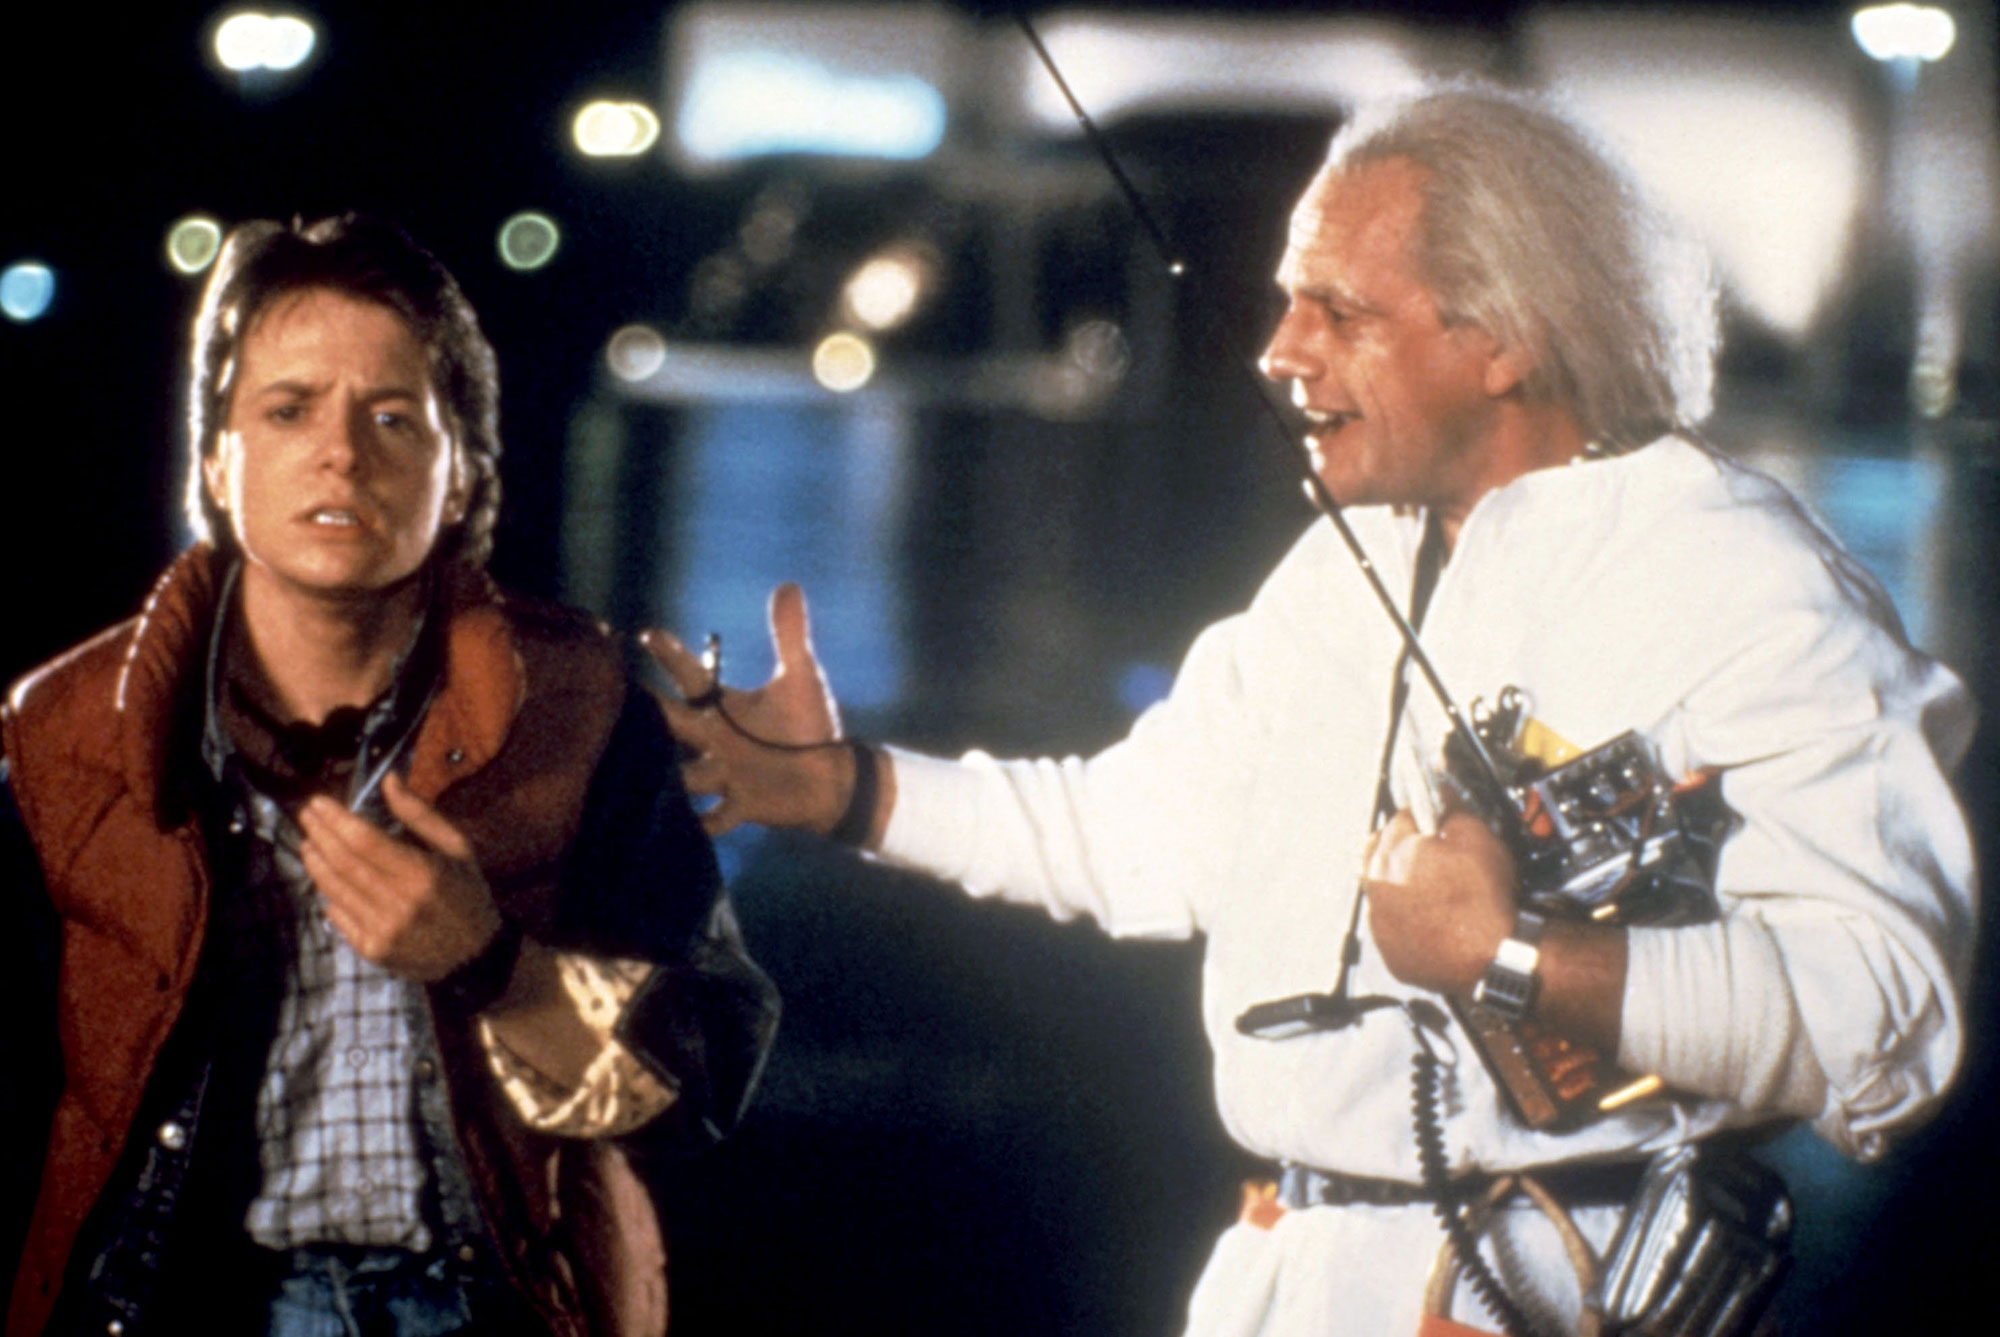 BACK TO THE FUTURE, Michael J. Fox, Christopher Lloyd, 1985, (c)Universal/courtesy Everett Collectio